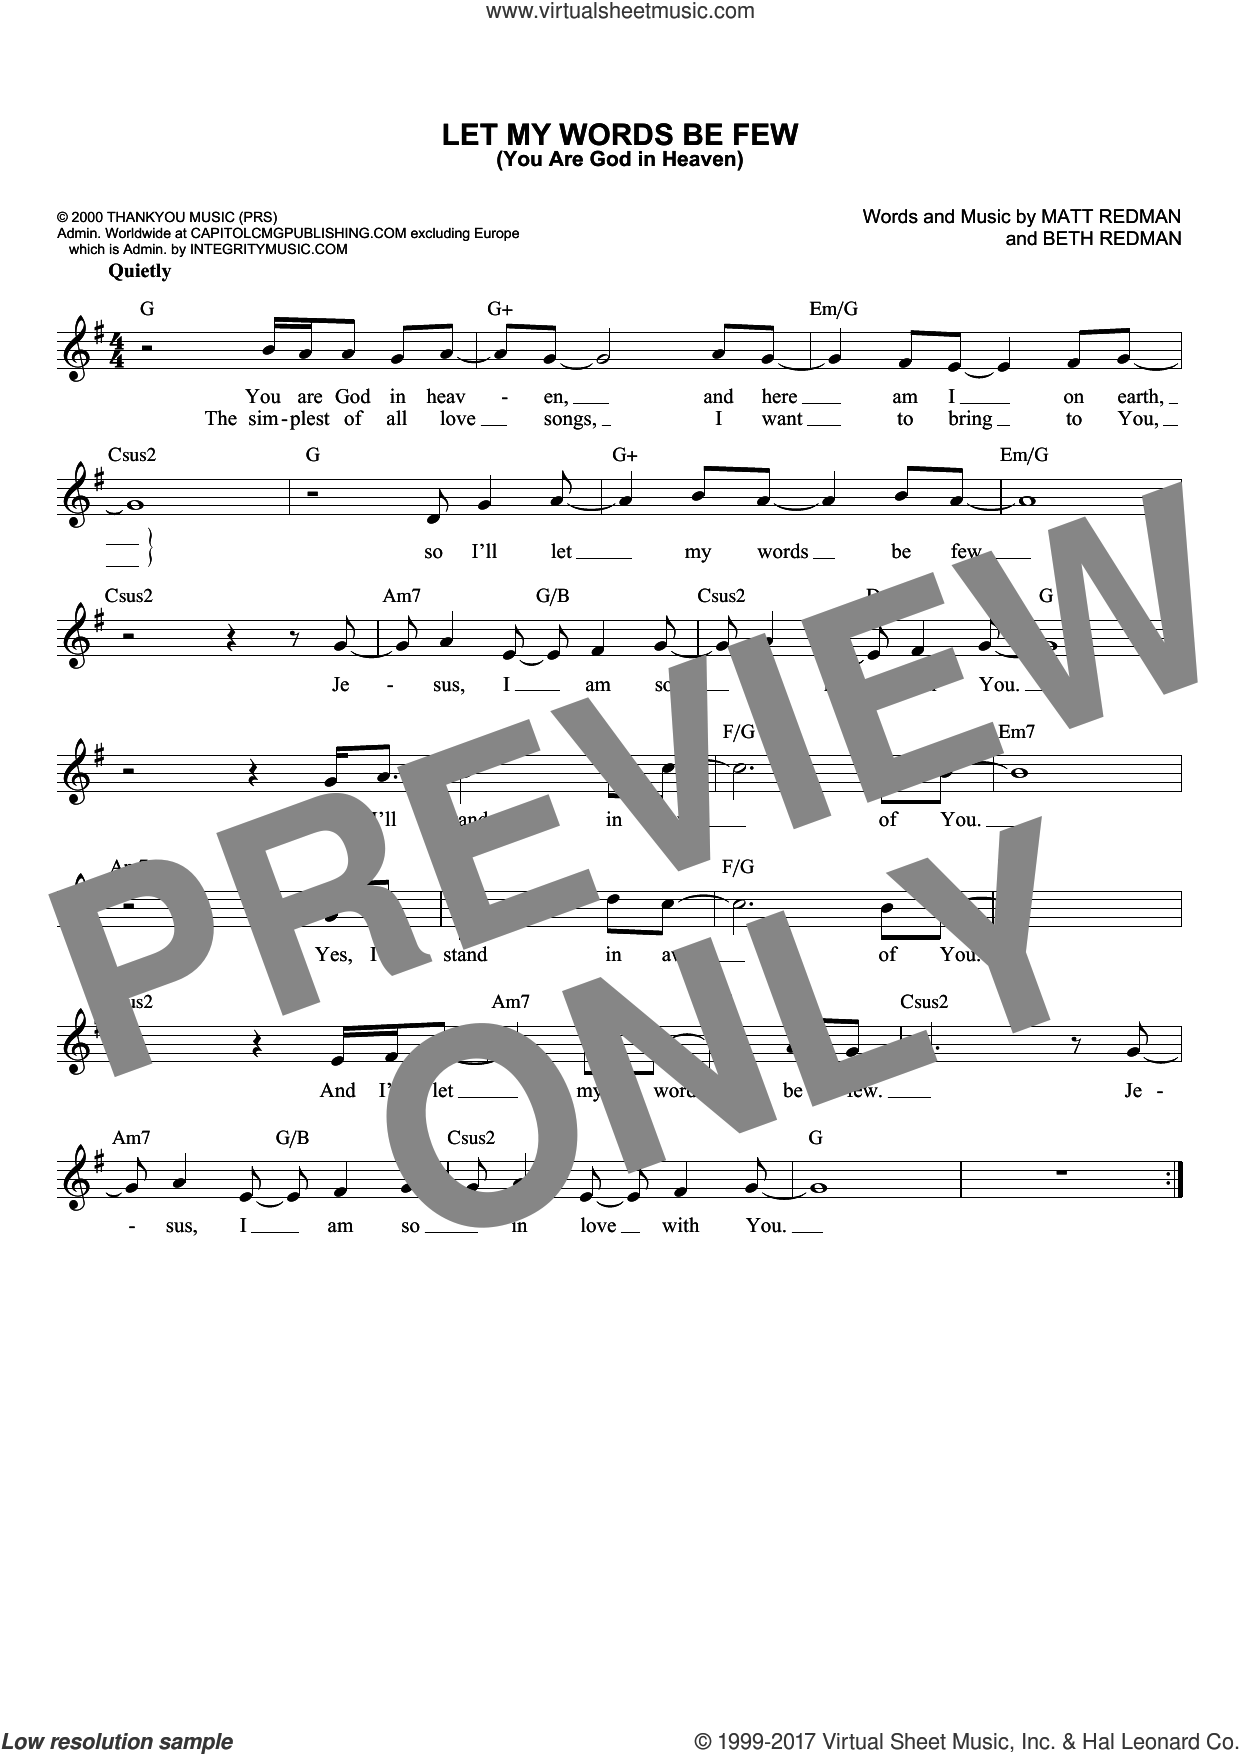 Let My Words Be Few (You Are God In Heaven) sheet music for voice and other instruments (fake book) by Matt Redman, Rebecca St. James and Beth Redman, intermediate skill level